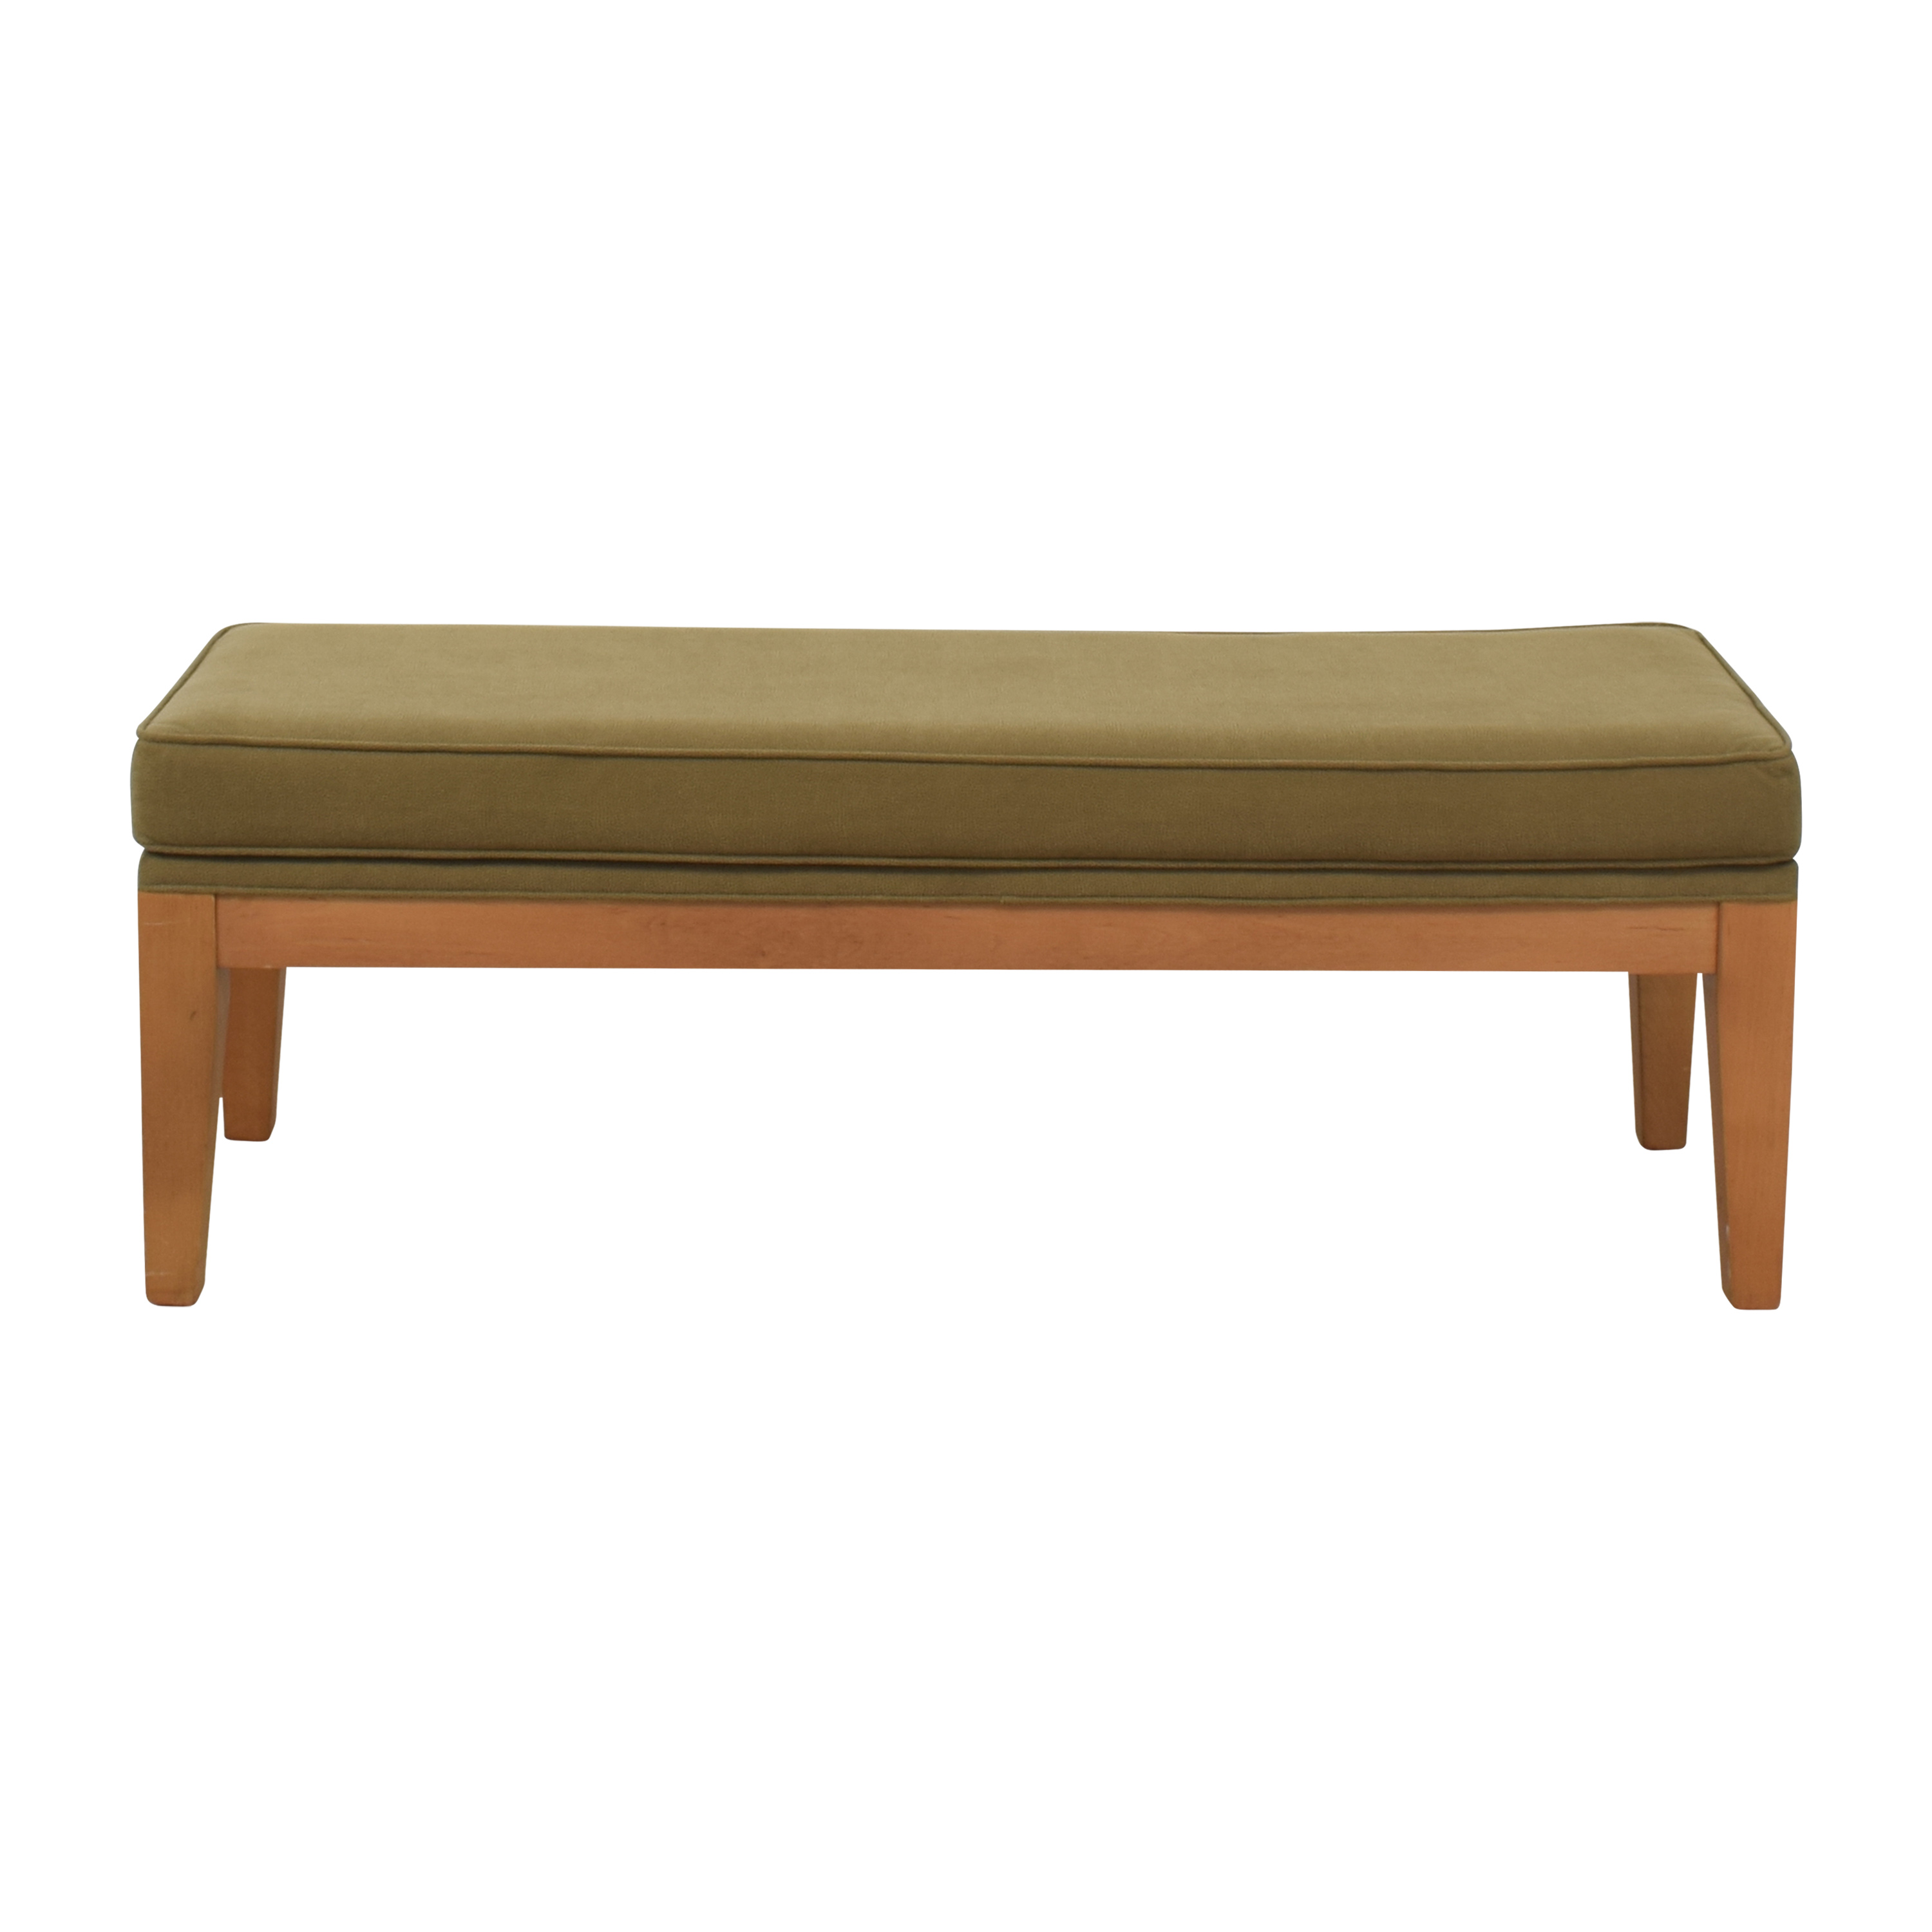 Ethan Allen Ethan Allen Contemporary Upholstered Bench nyc